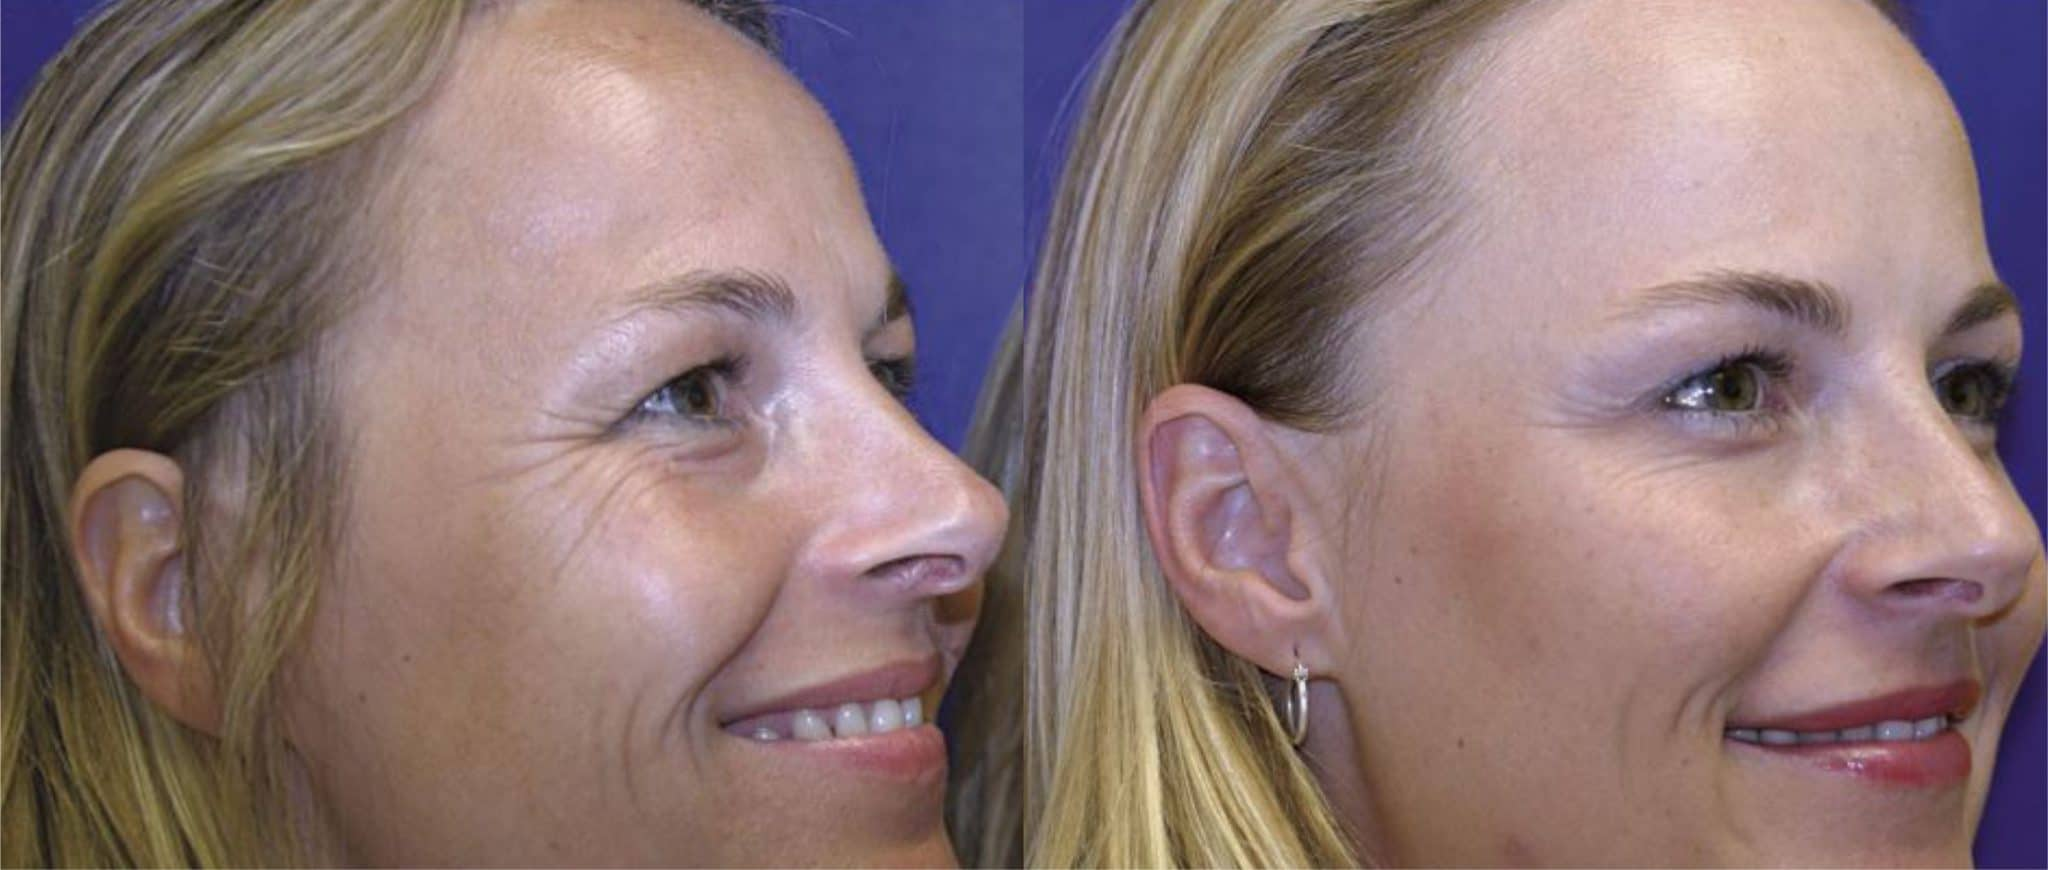 Do anti wrinkle injections prevent wrinkles?